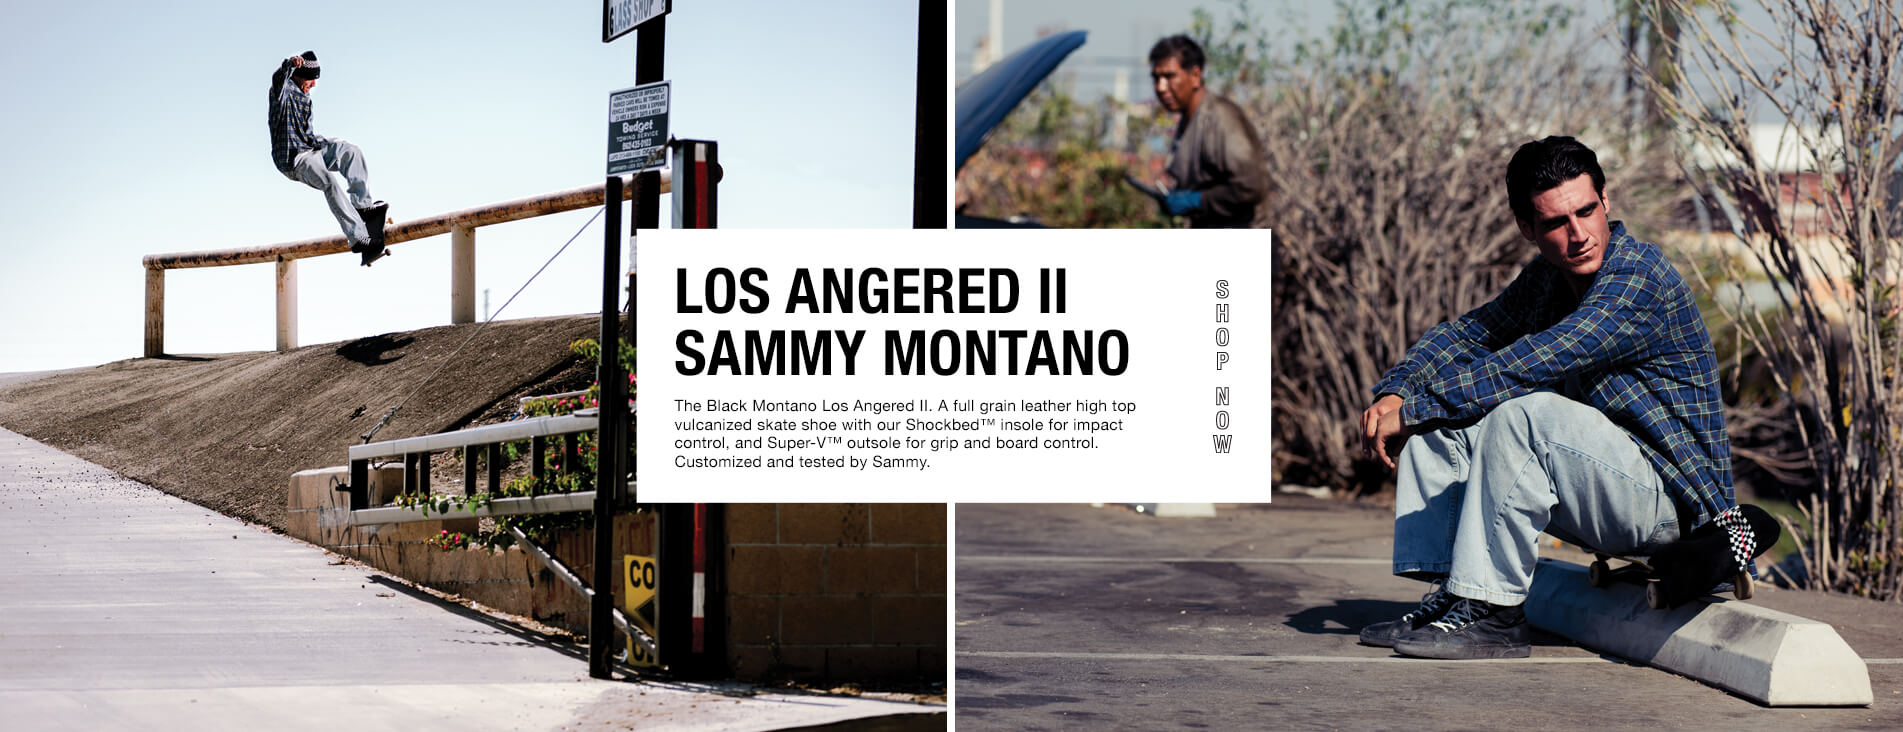 SAMMY MONTANO LA II SKATE SHOES